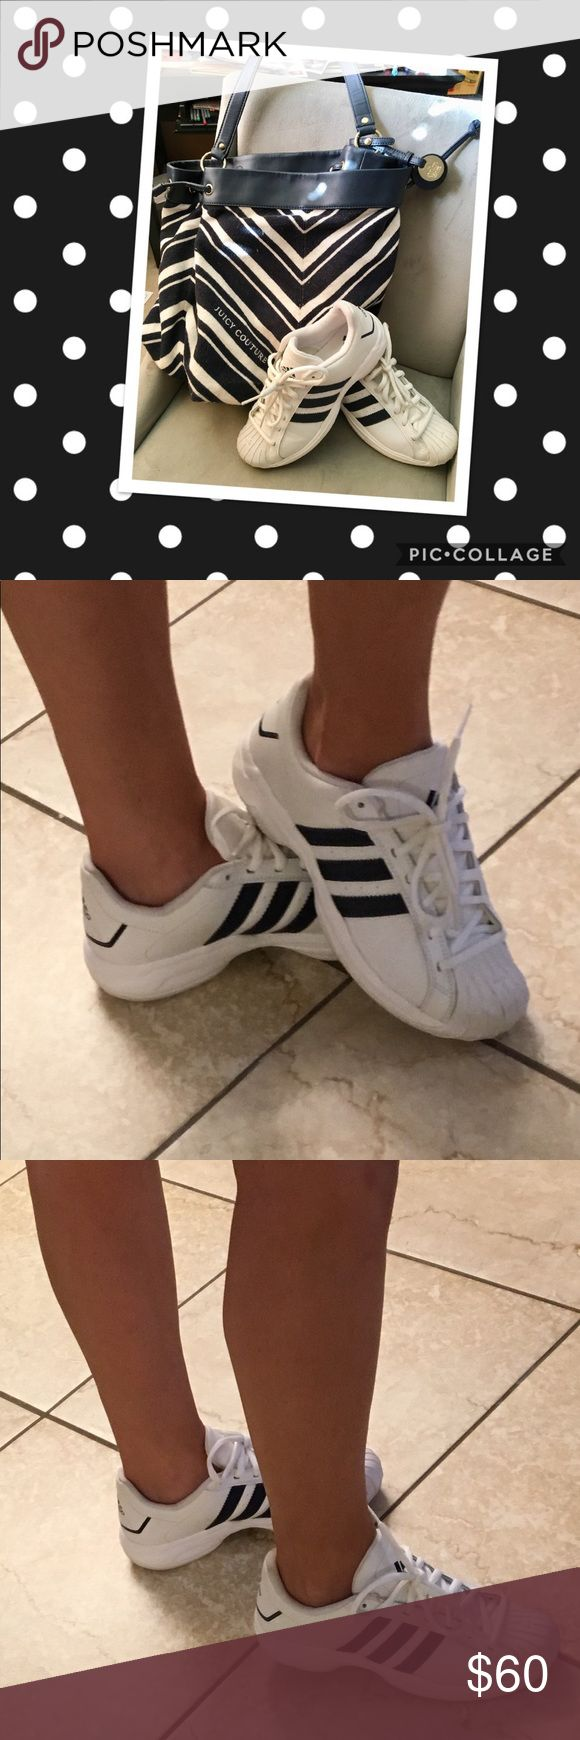 Vintage Adidas Superstar 2G Vintage Adidas Superstar 2G shoes! In excellent used condition. See pics for wear, feel free to ask questions too. These are technically men's shoes (size 7) I am a 9 to a 10 in shoes and these fit perfect 👌 Elevate your lounge look with these unique kicks. adidas Shoes